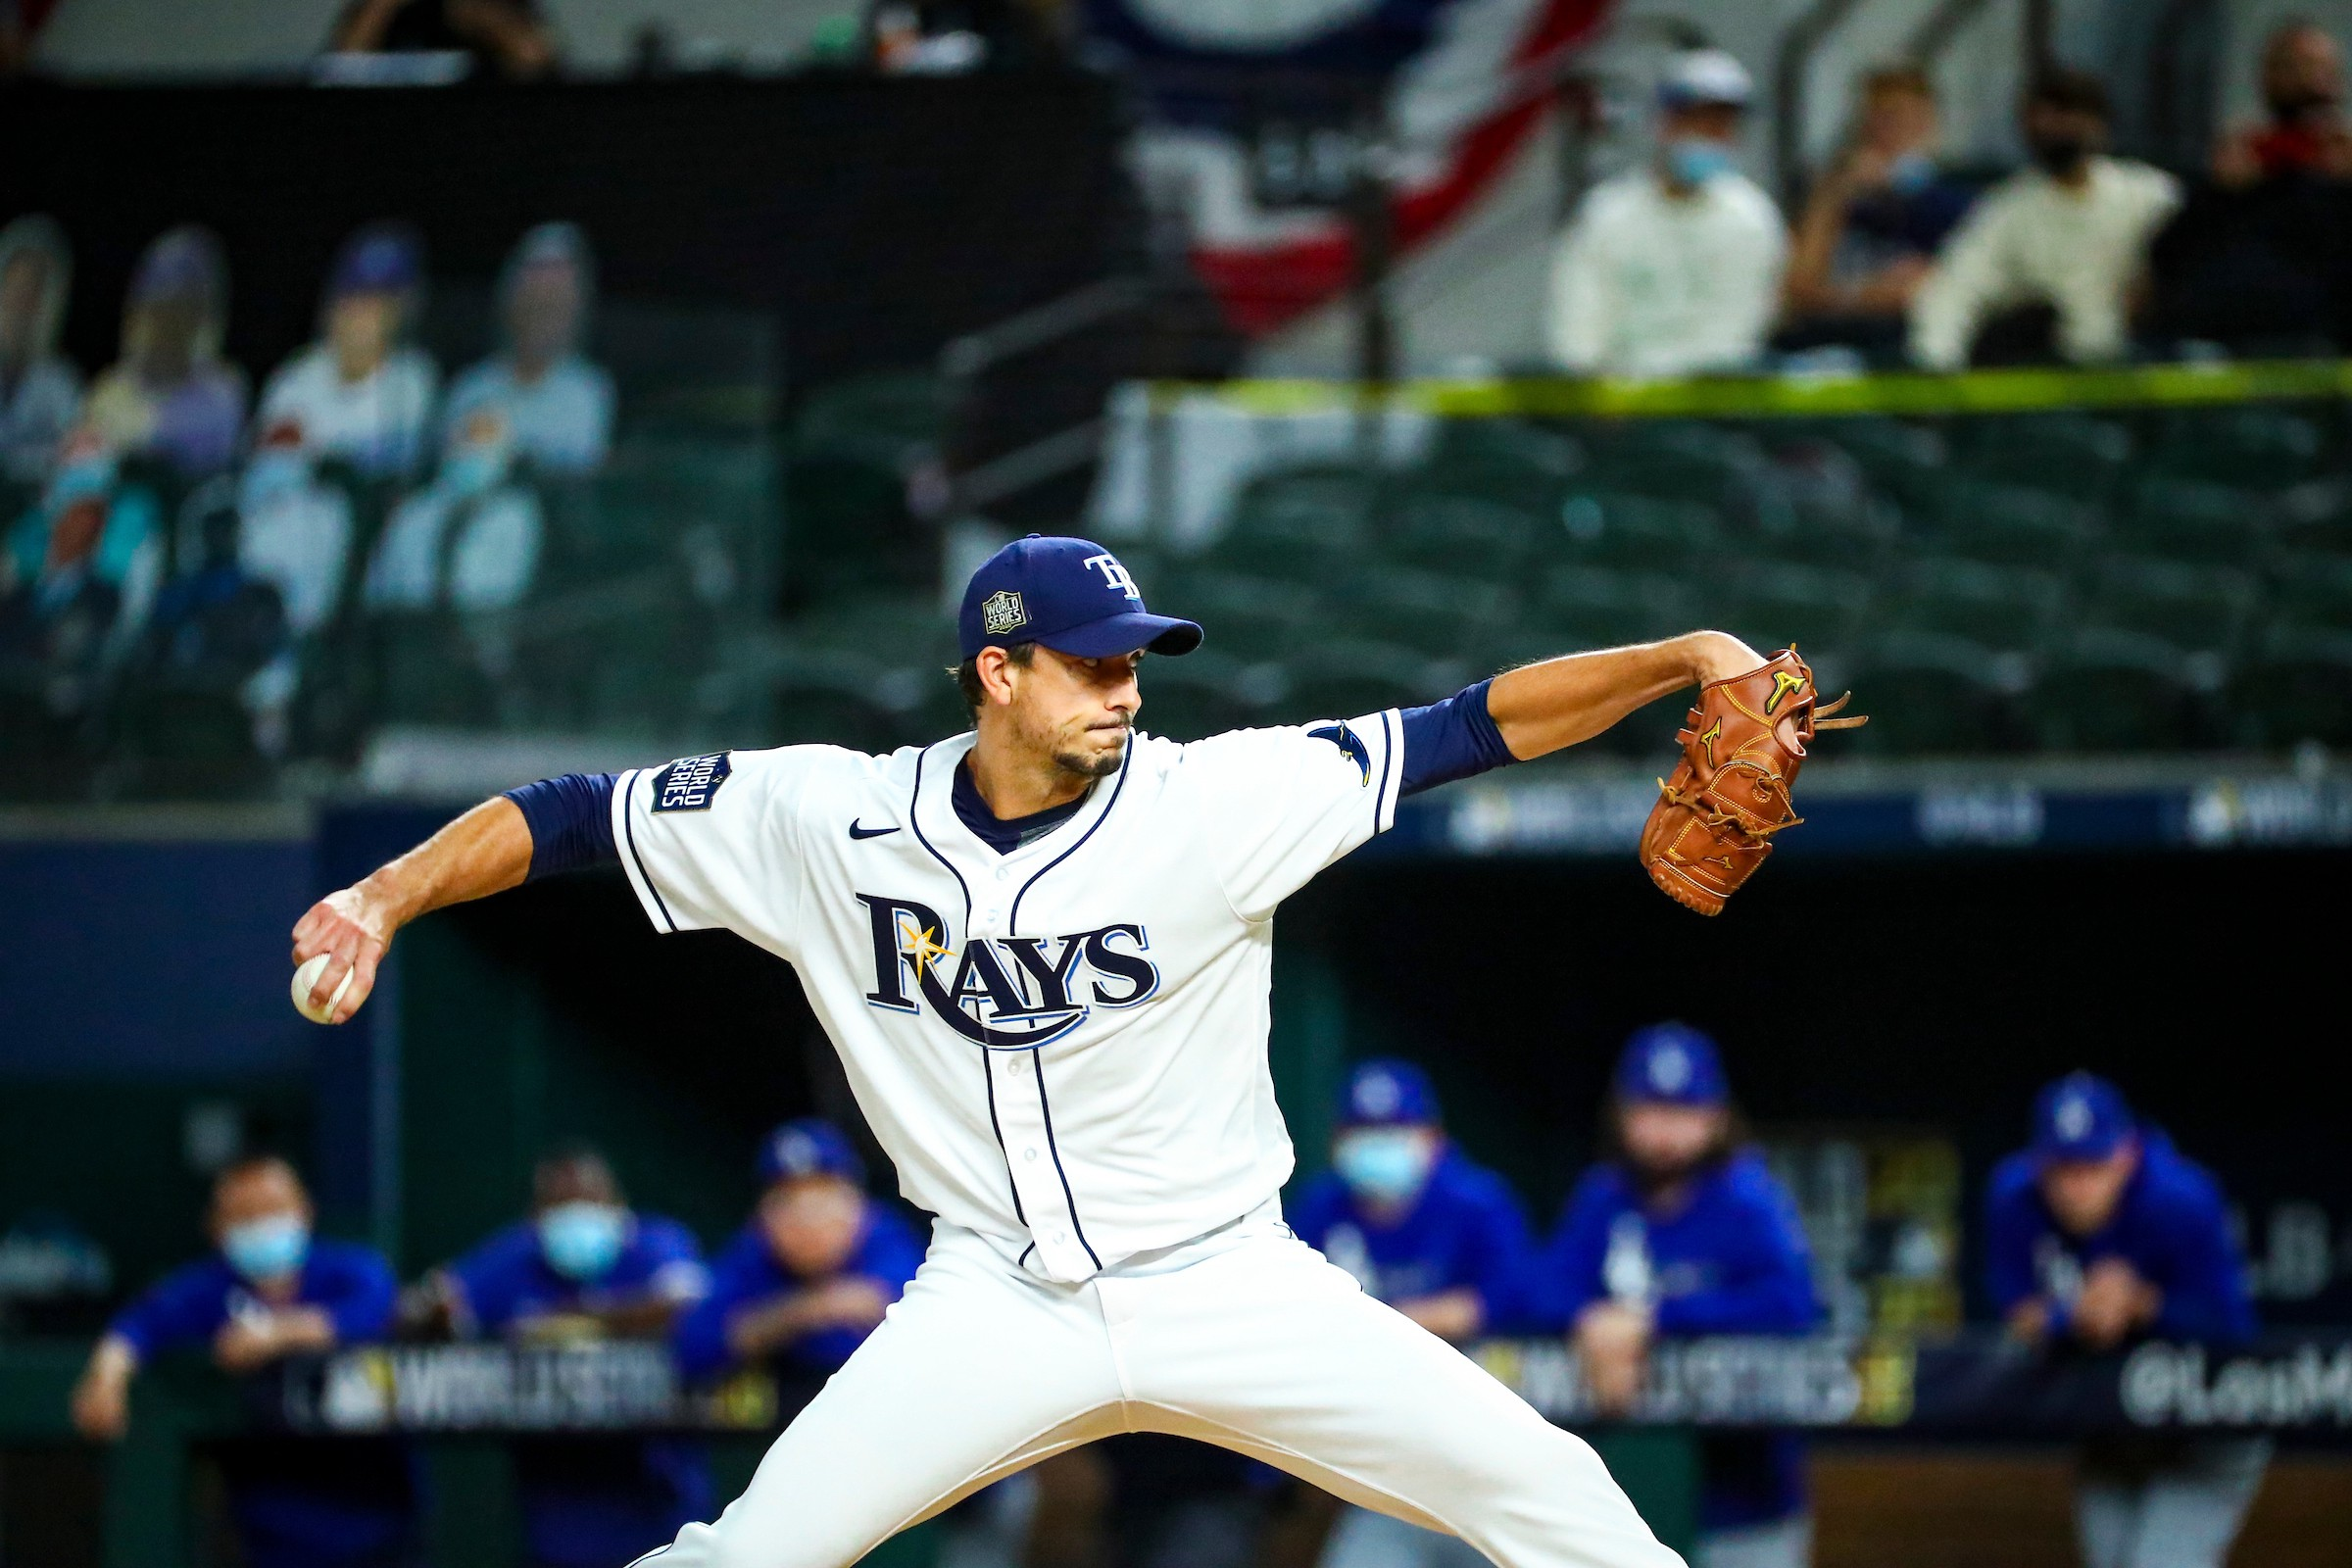 yq49qfzbvctx1m https raysradio mlblogs com rays will need to cover loss of morton collectively 7c7523ba8cf2